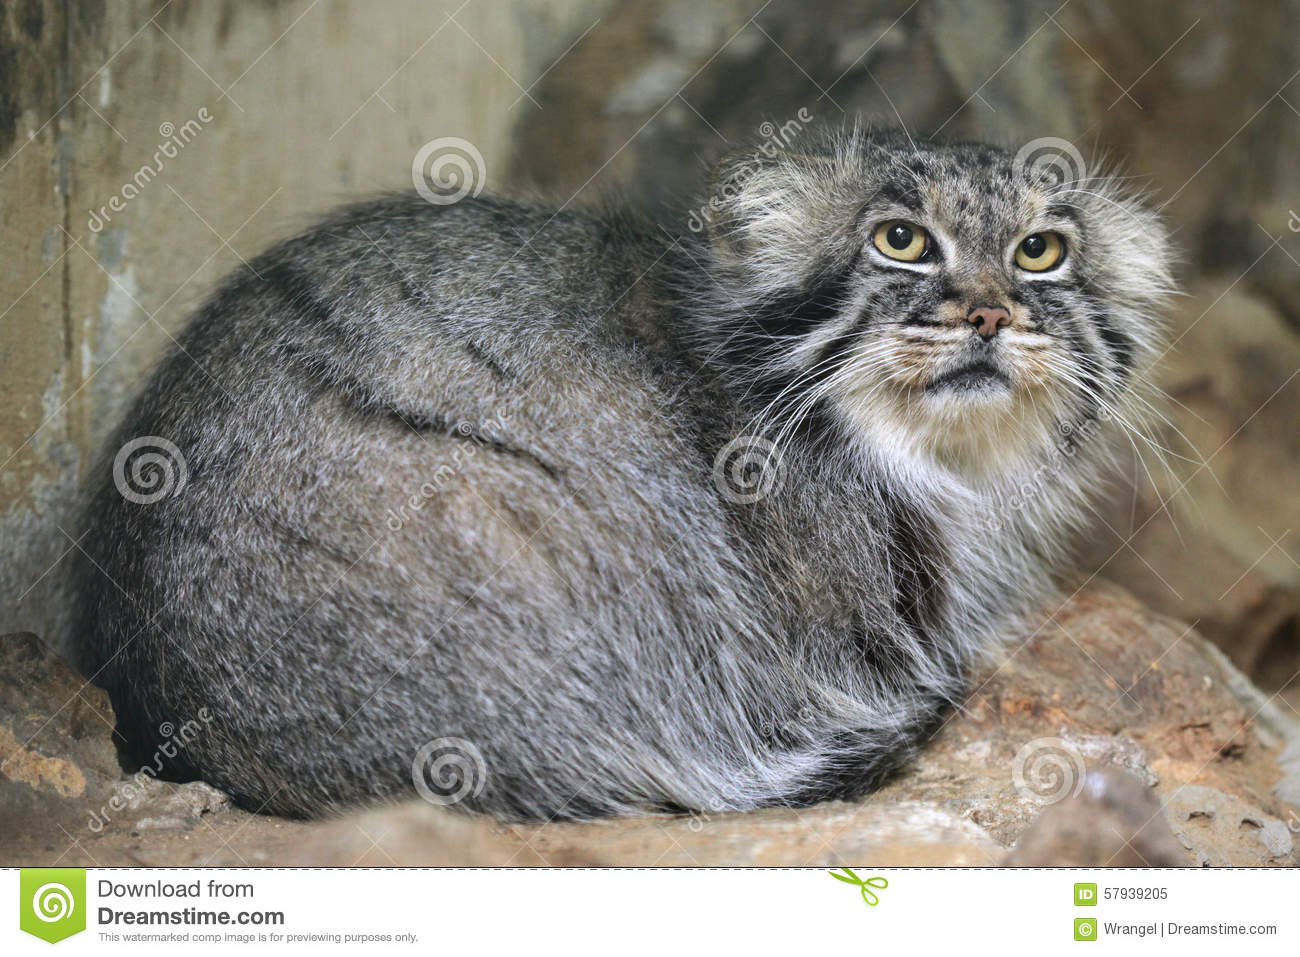 Pallas's Cat clipart #7, Download drawings